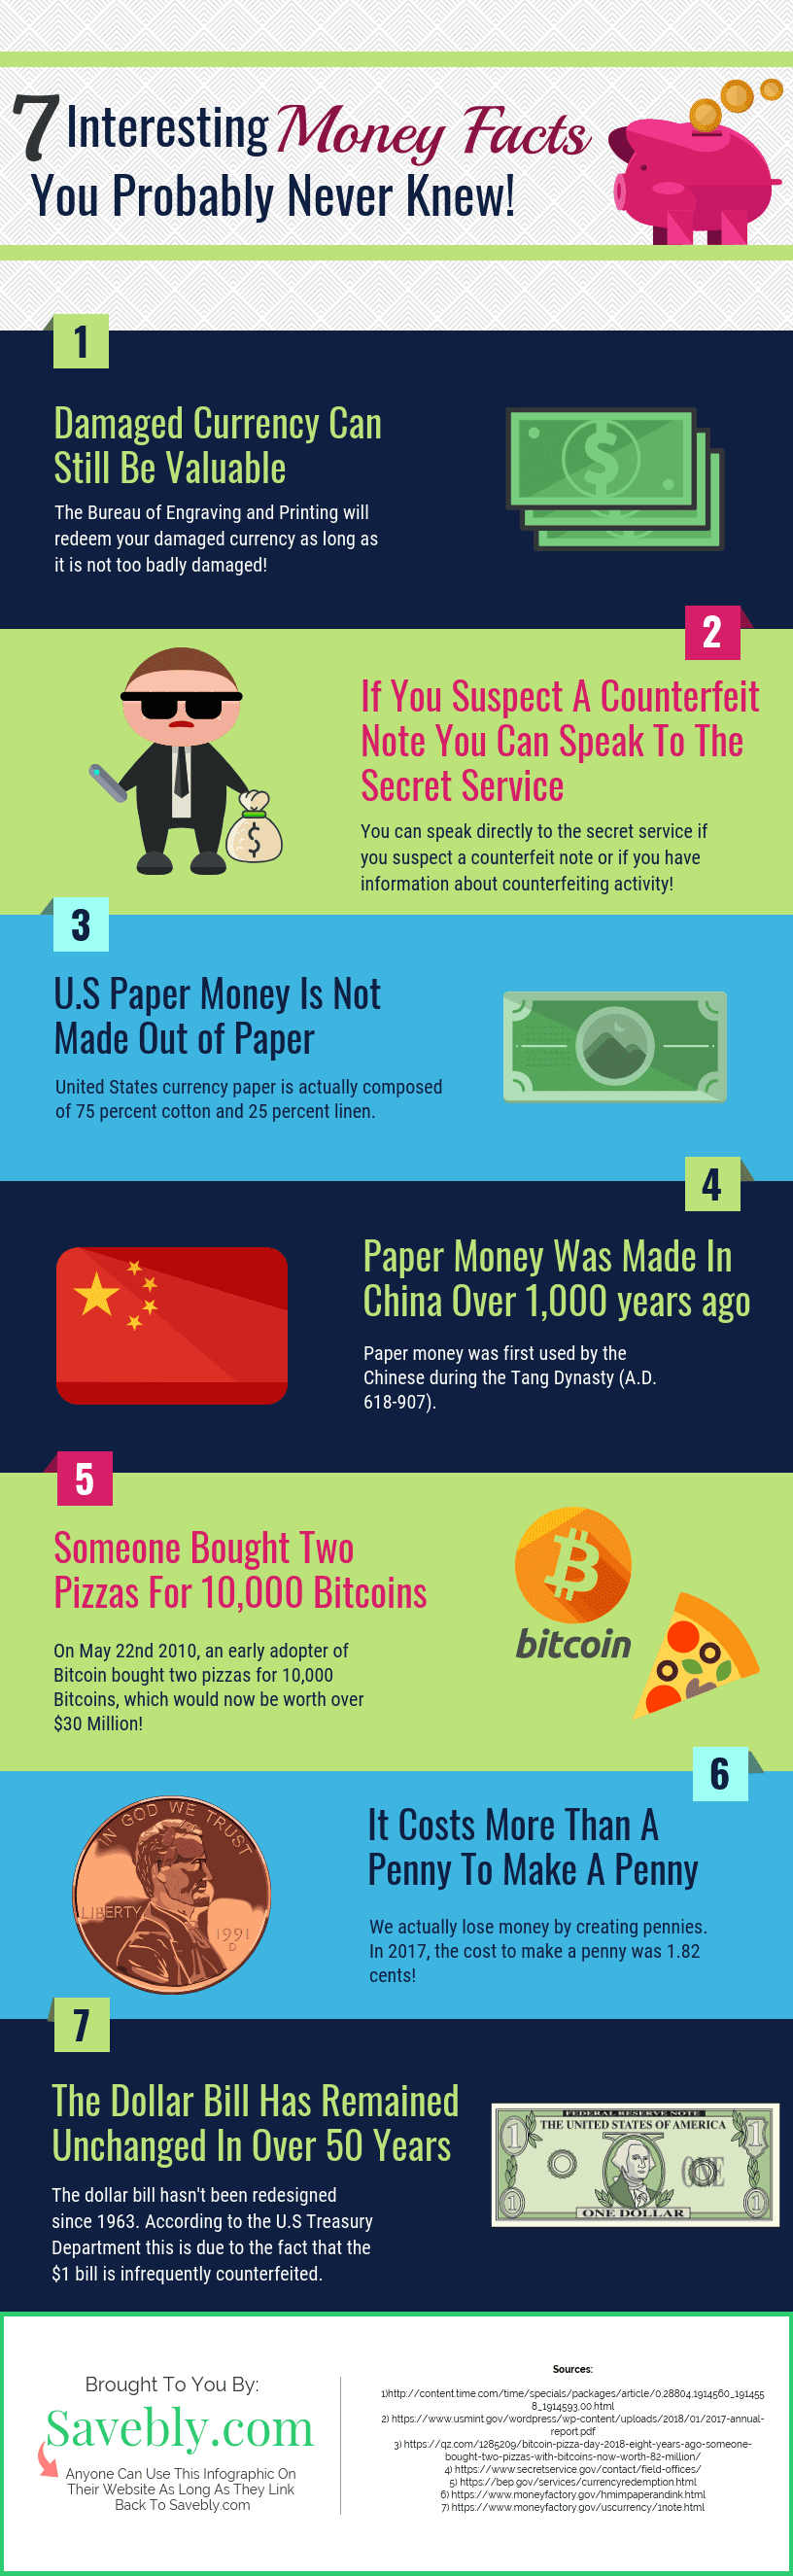 7 Interesting Money Facts You Probably Never Heard Of #infographic